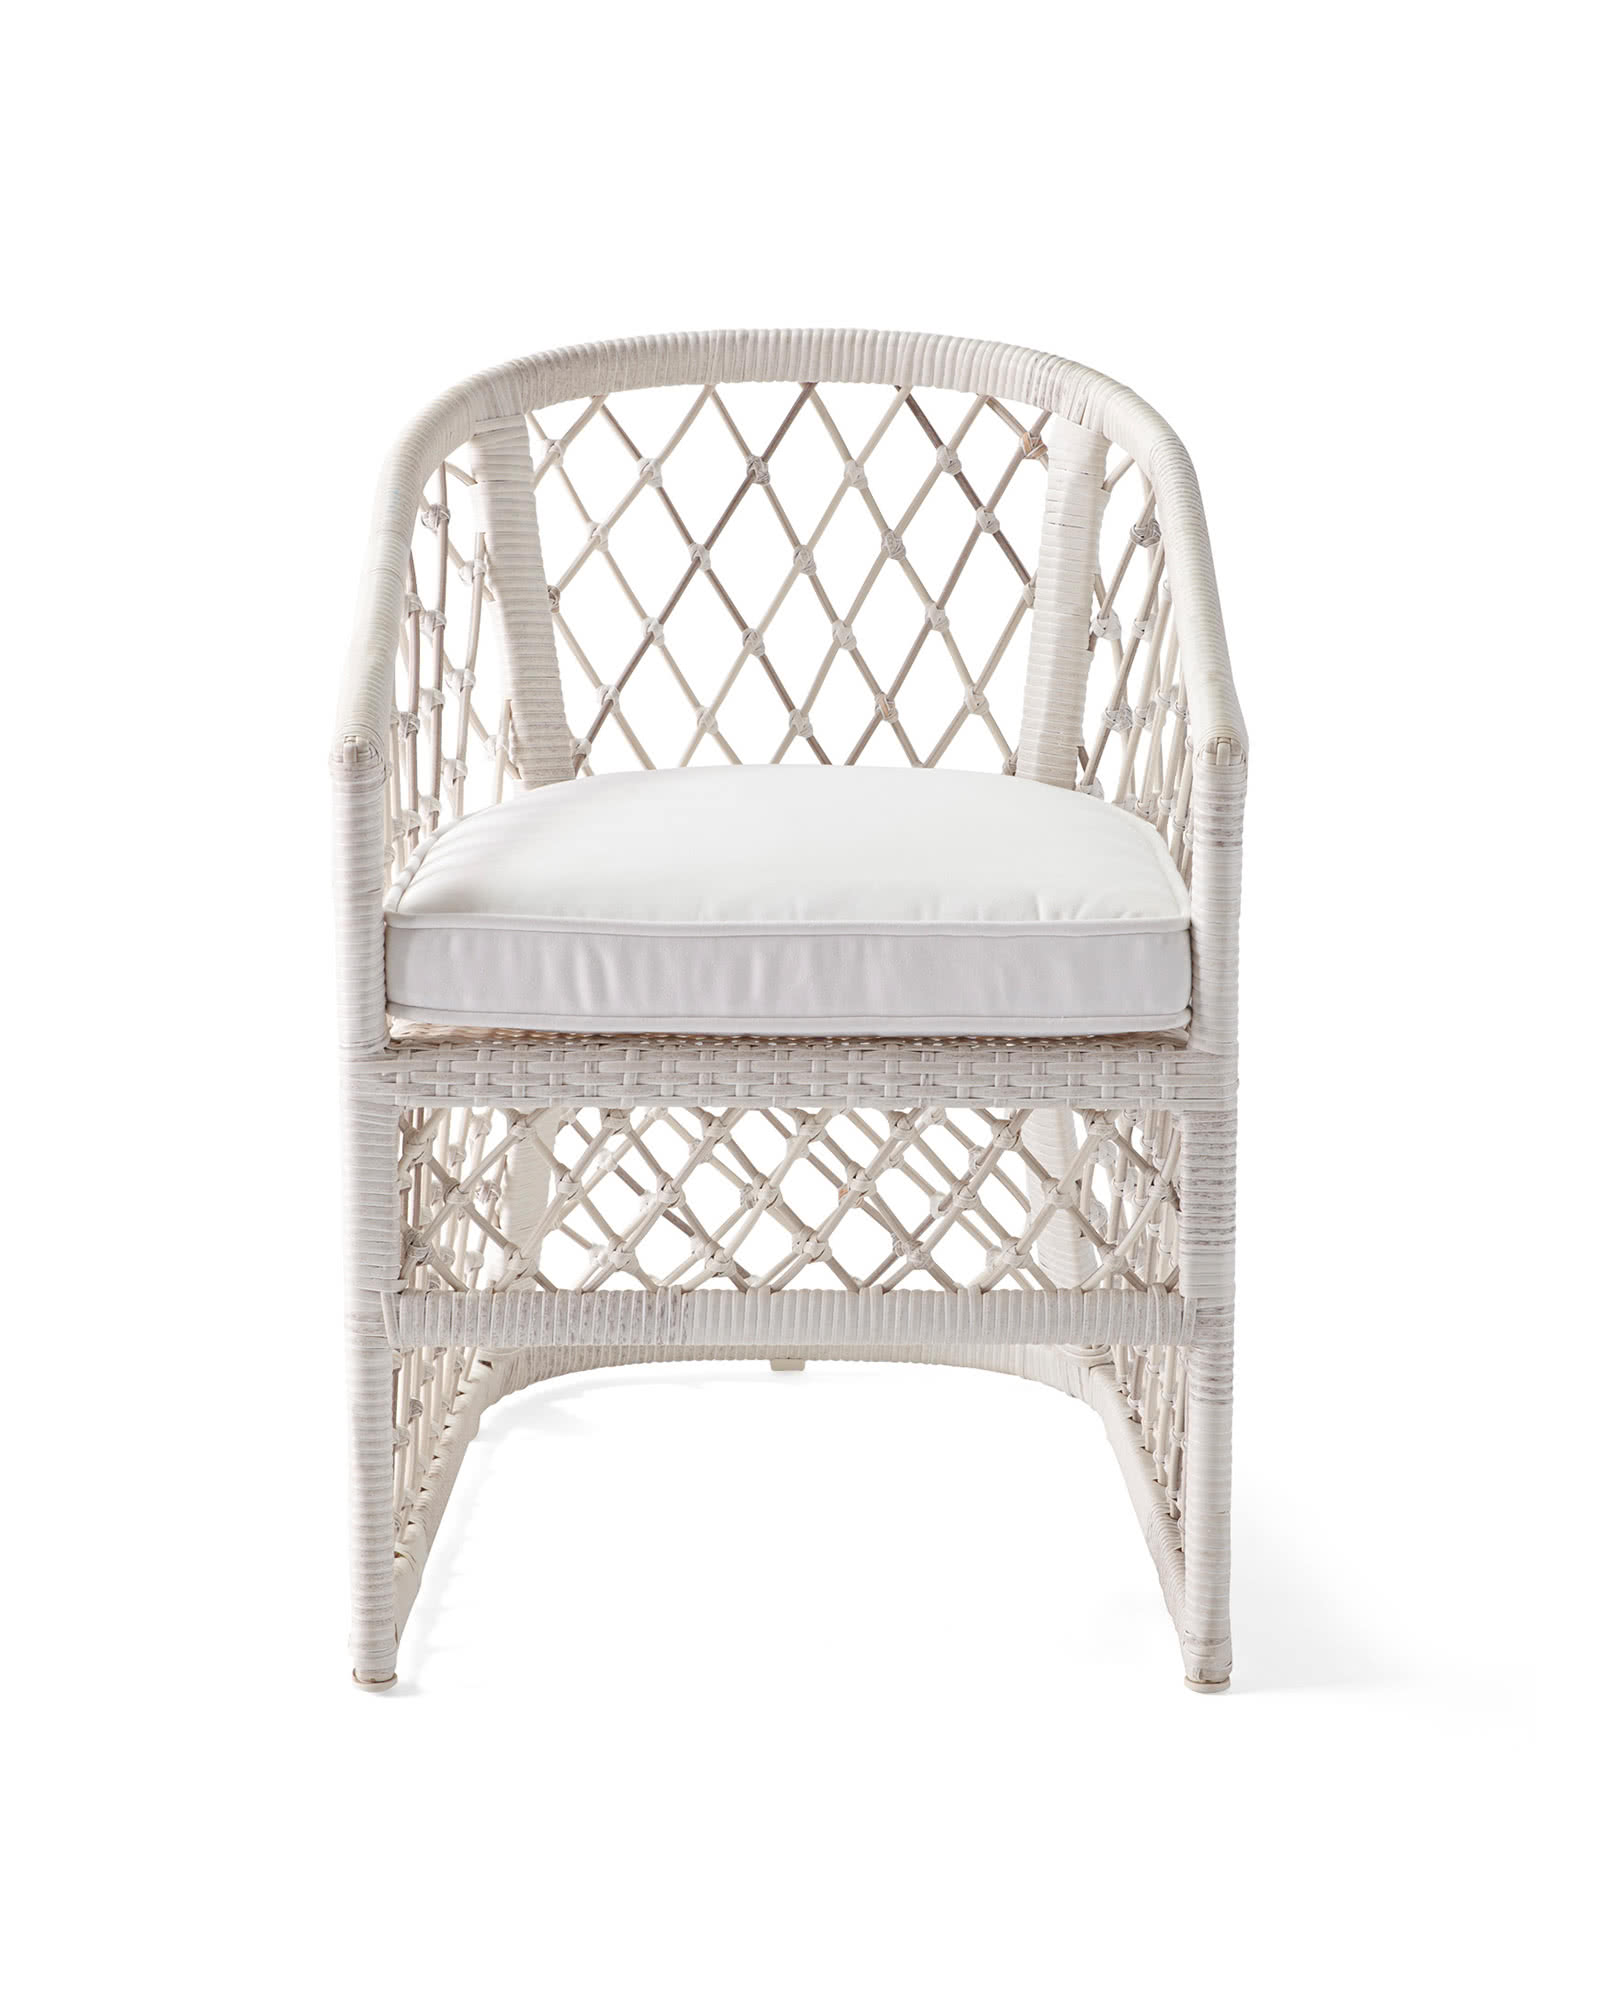 Capistrano Outdoor dining chair from Serena & Lily. #outdoordining #diningchairs #wovenchair #coastalstyle